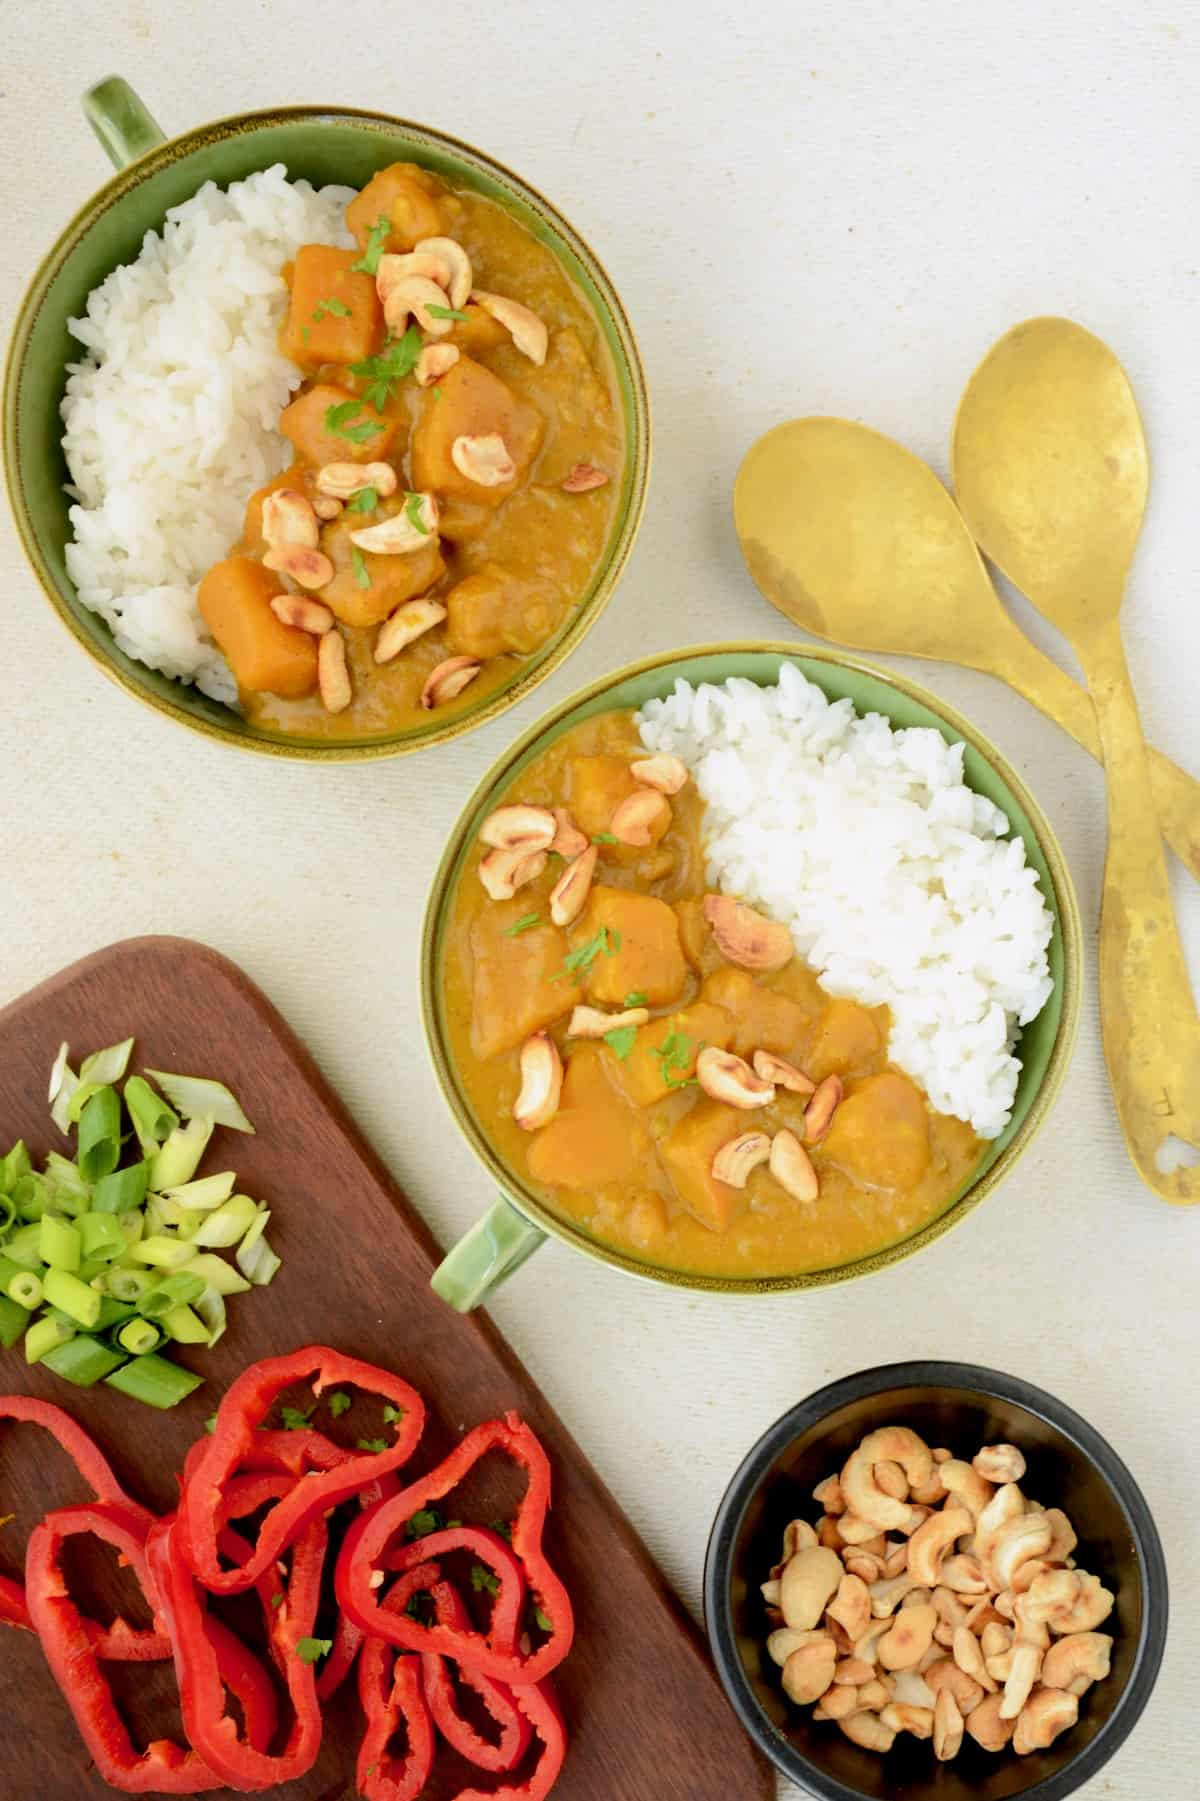 Two green bowls with curry and rice, next to a board of raw pepper and spring onions.